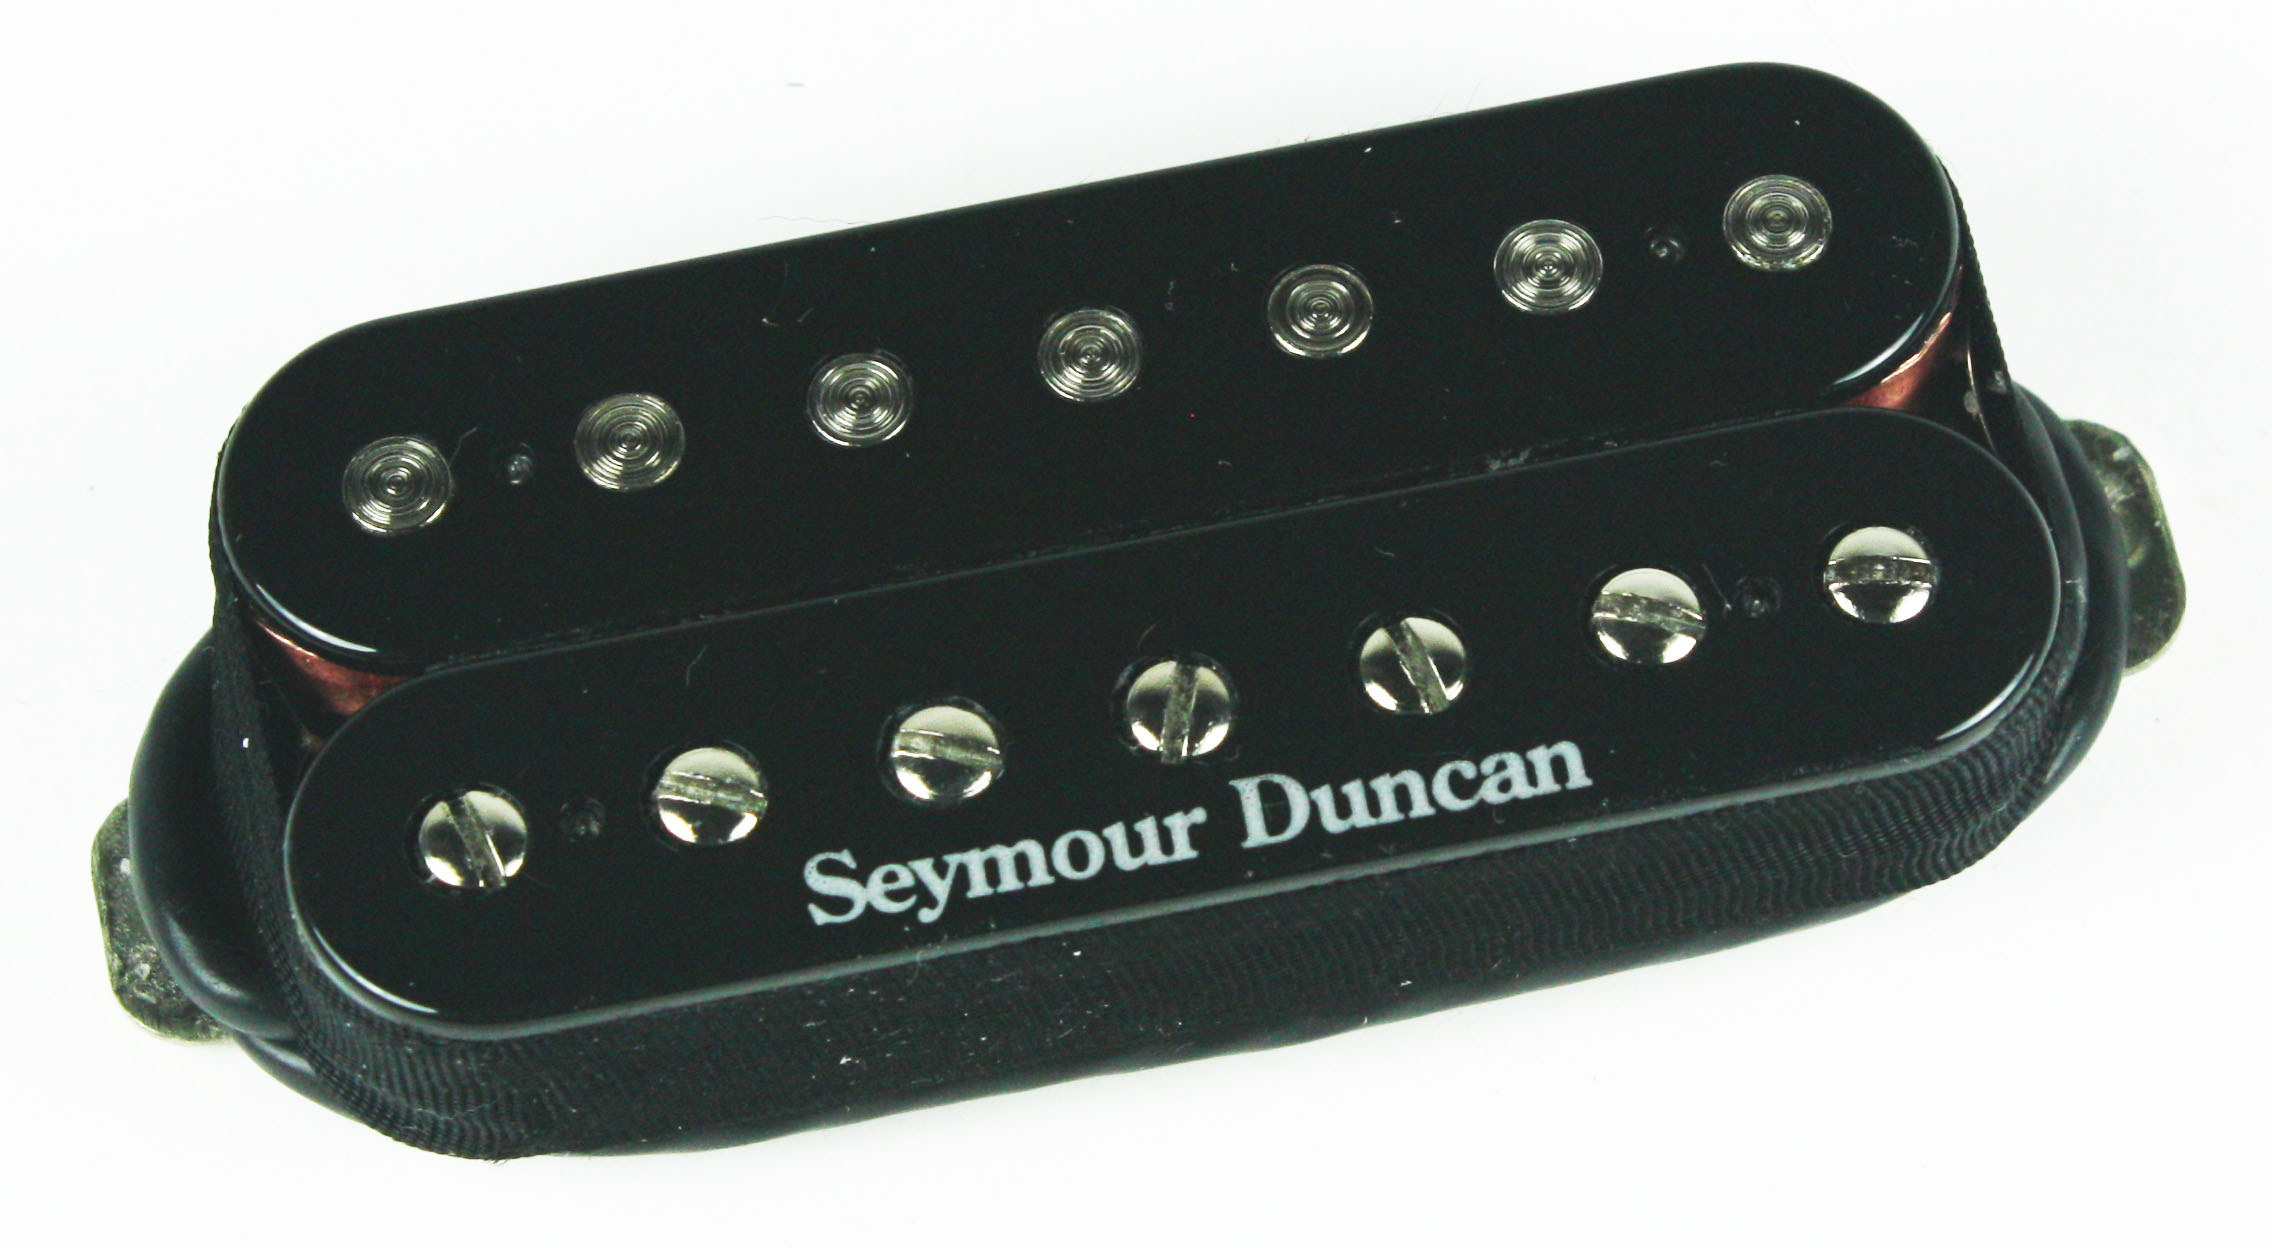 Seymour Duncan SH-1b \'59 Model Bridge Pickup, 7-String, Black